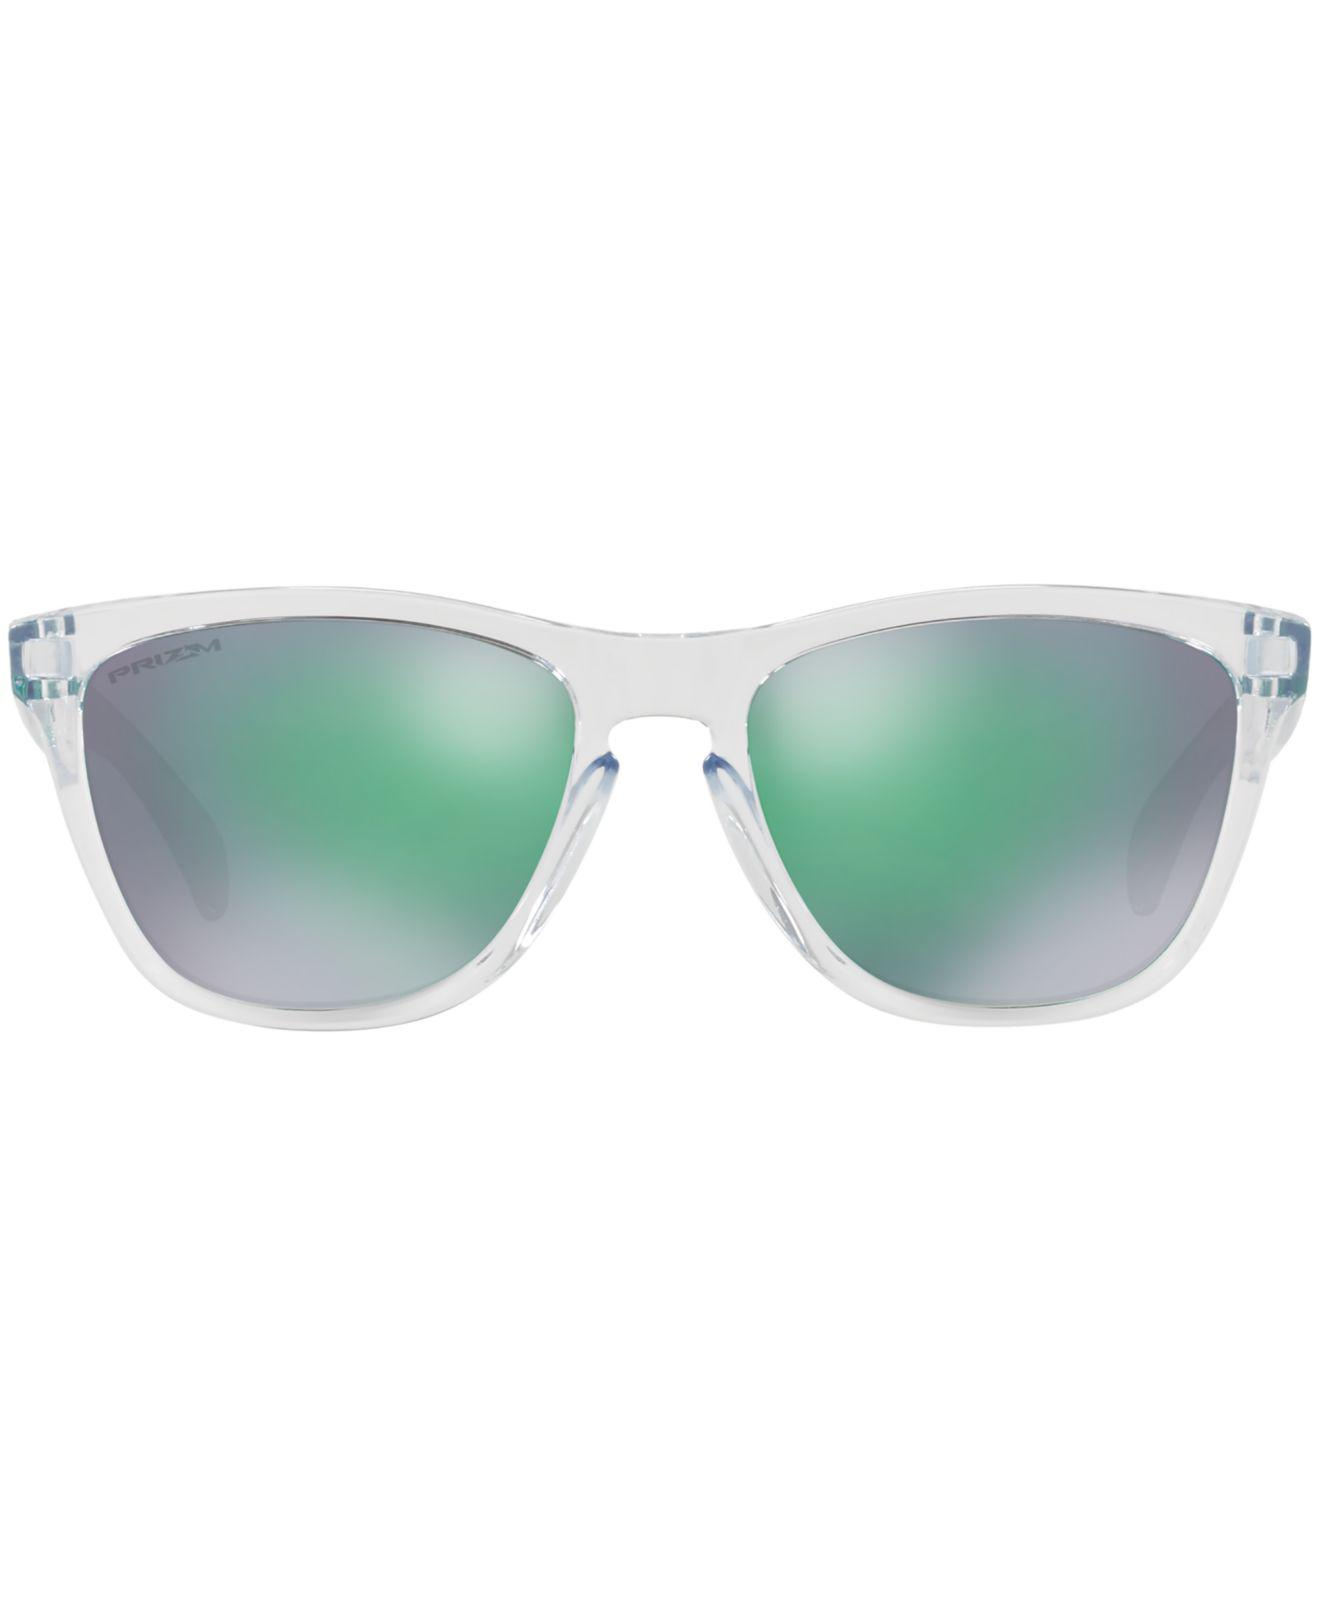 bd17fec43a2 Lyst - Oakley Frogskins Prizm Sunglasses in Green for Men